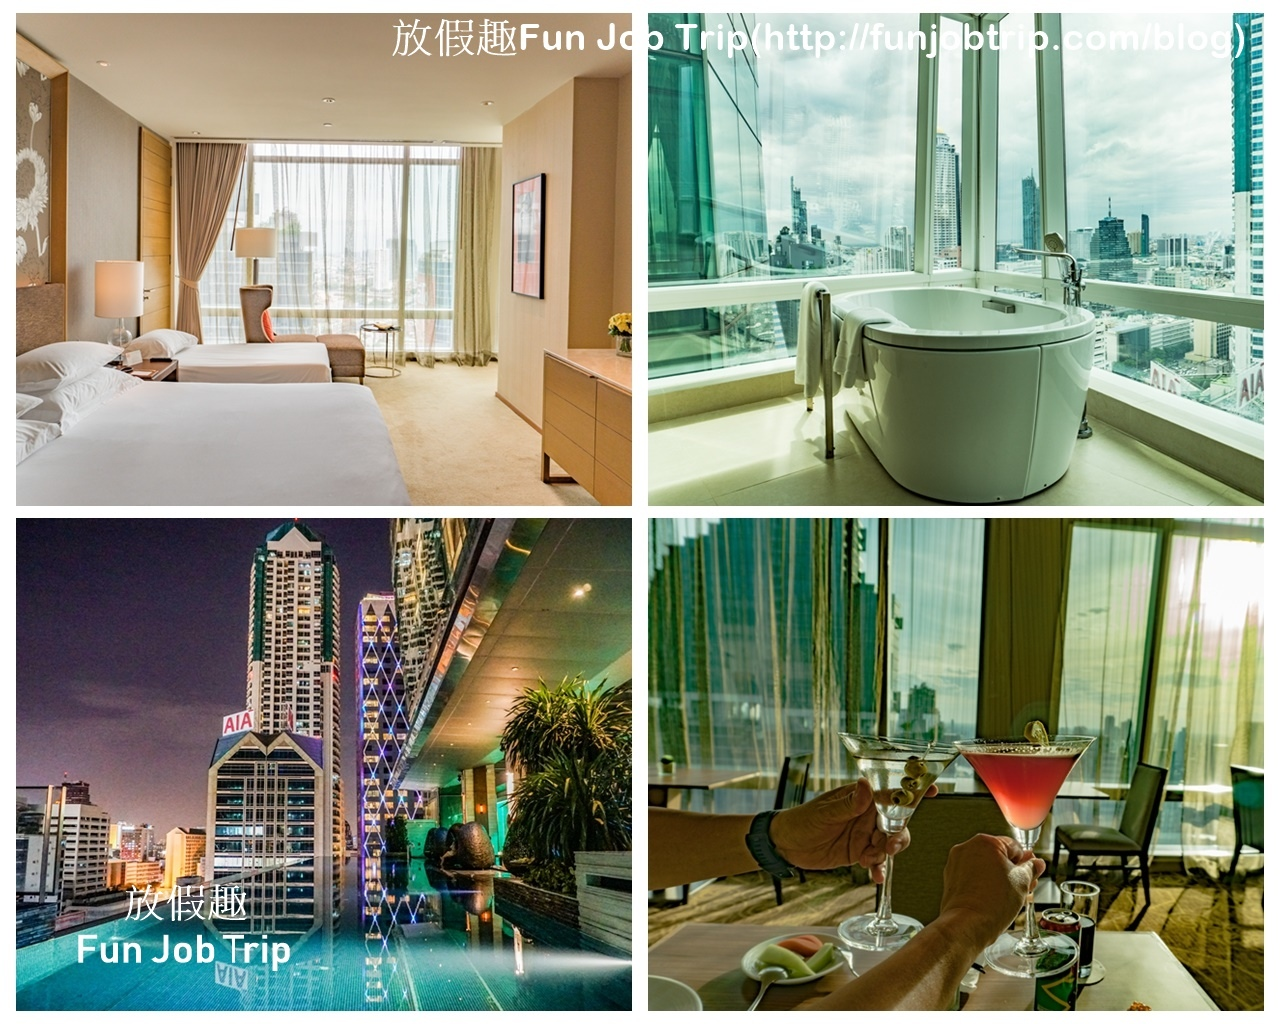 064_Eastin Grand Hotel Sathorn Bangkok.jpg